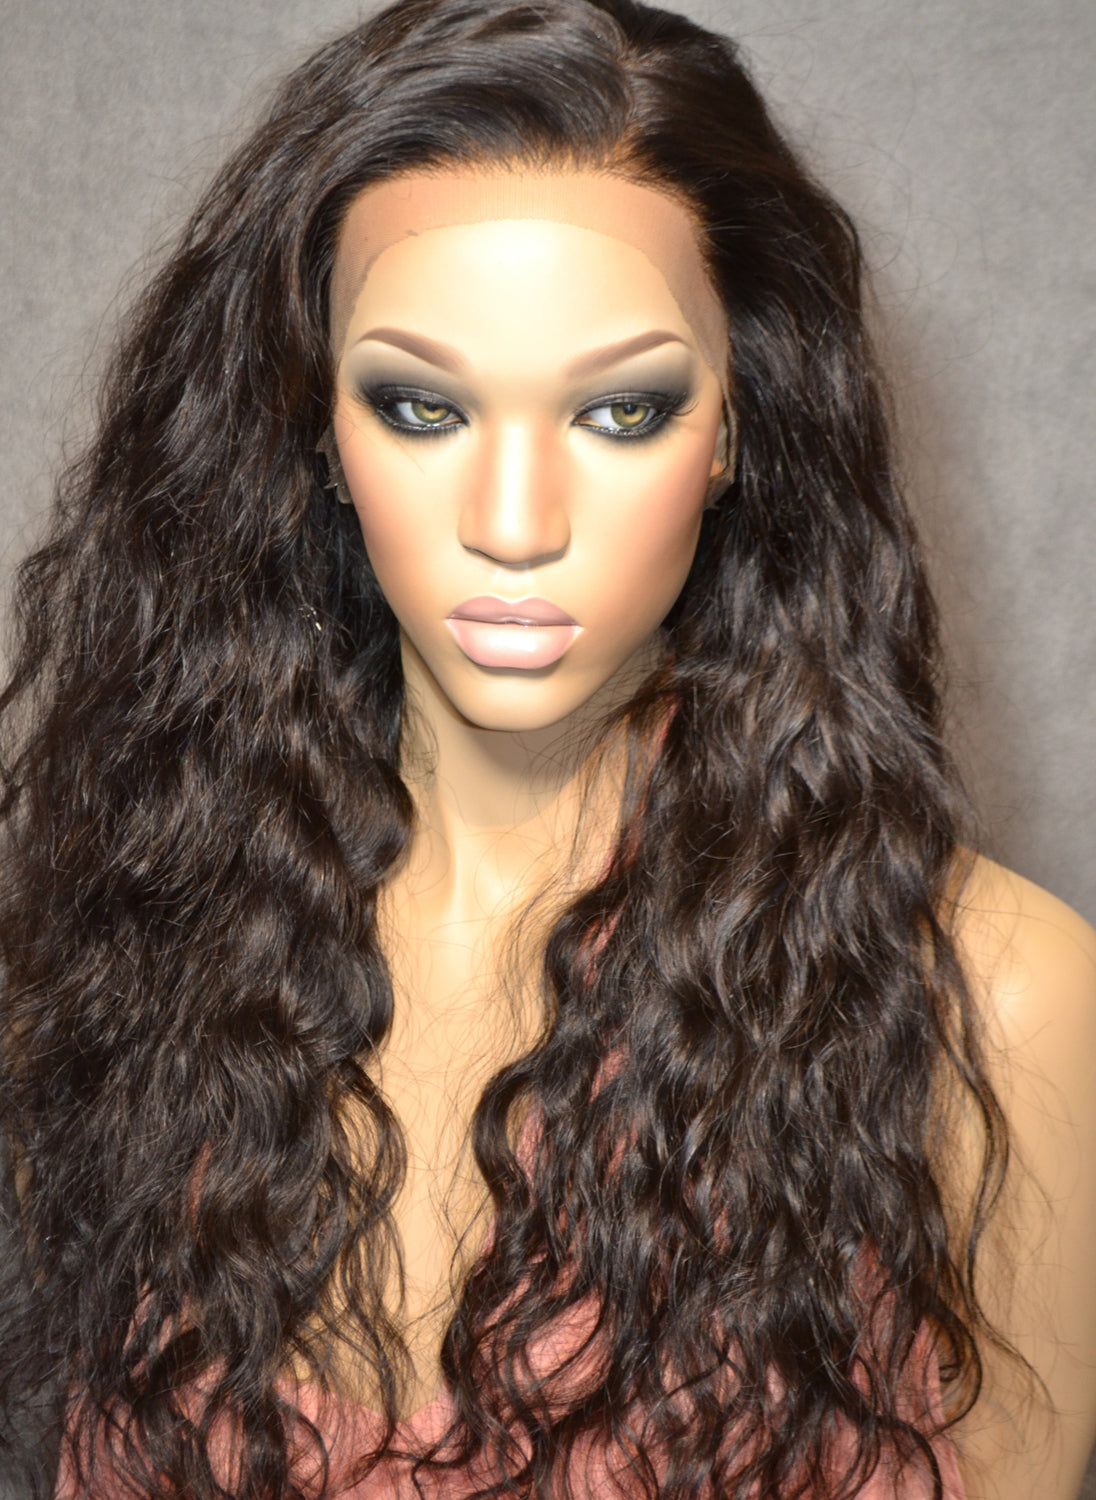 Christina 360 Frontal Wig - My Elegant Tresses - Human Hair Wigs